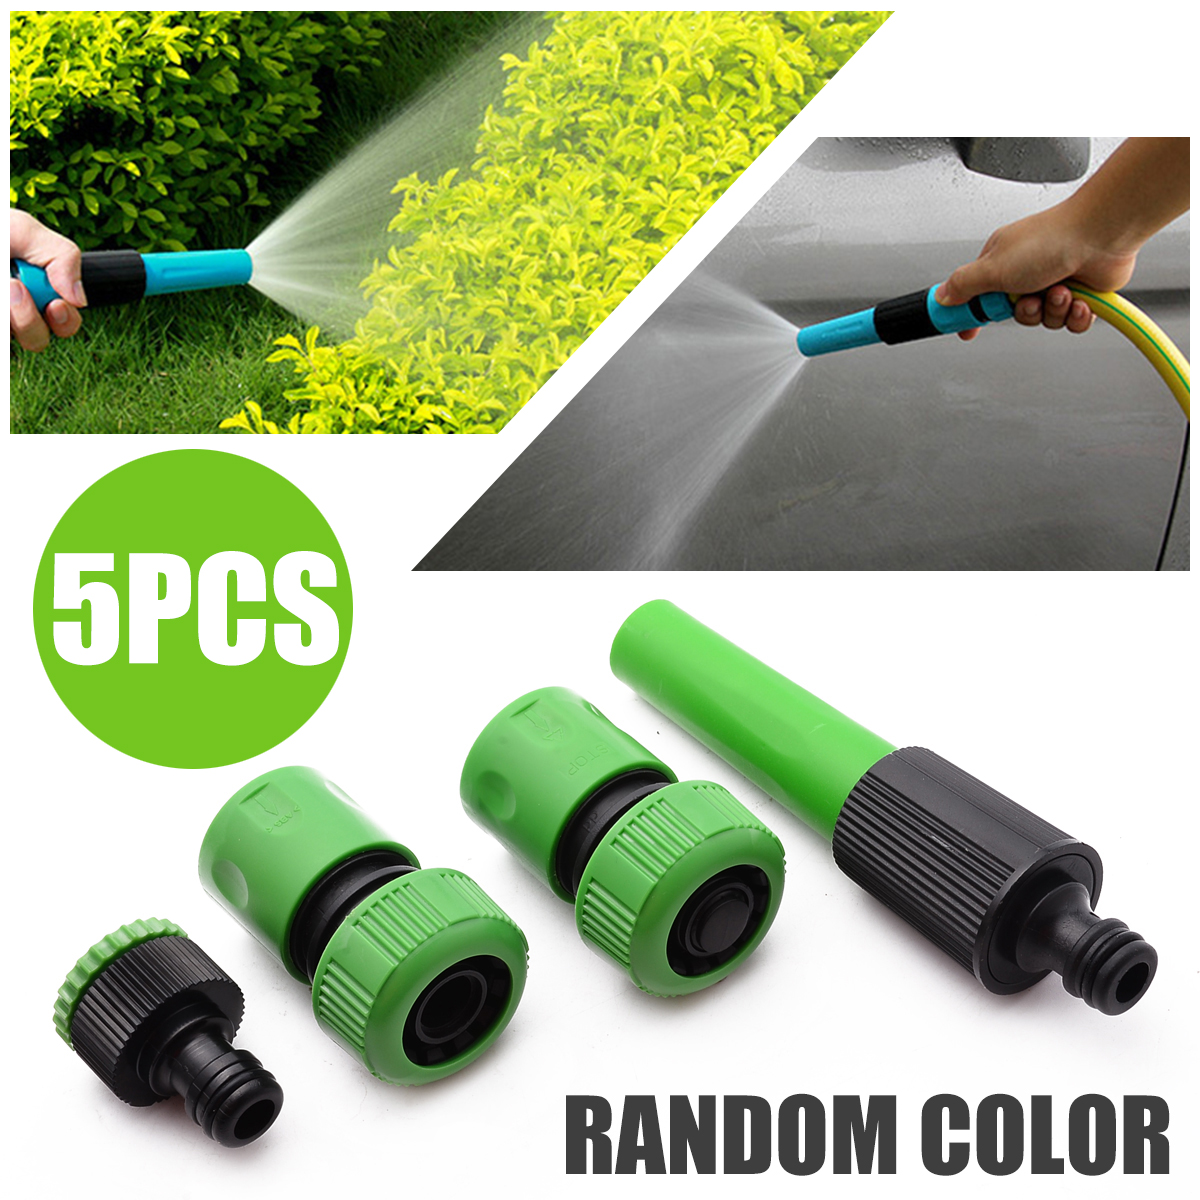 5Pcs Garden Lawn Water Tap Hose Pipe Fitting Set Garden Hose Connector Spray Tool Nozzle Watering Kits Universal Garden Supplies